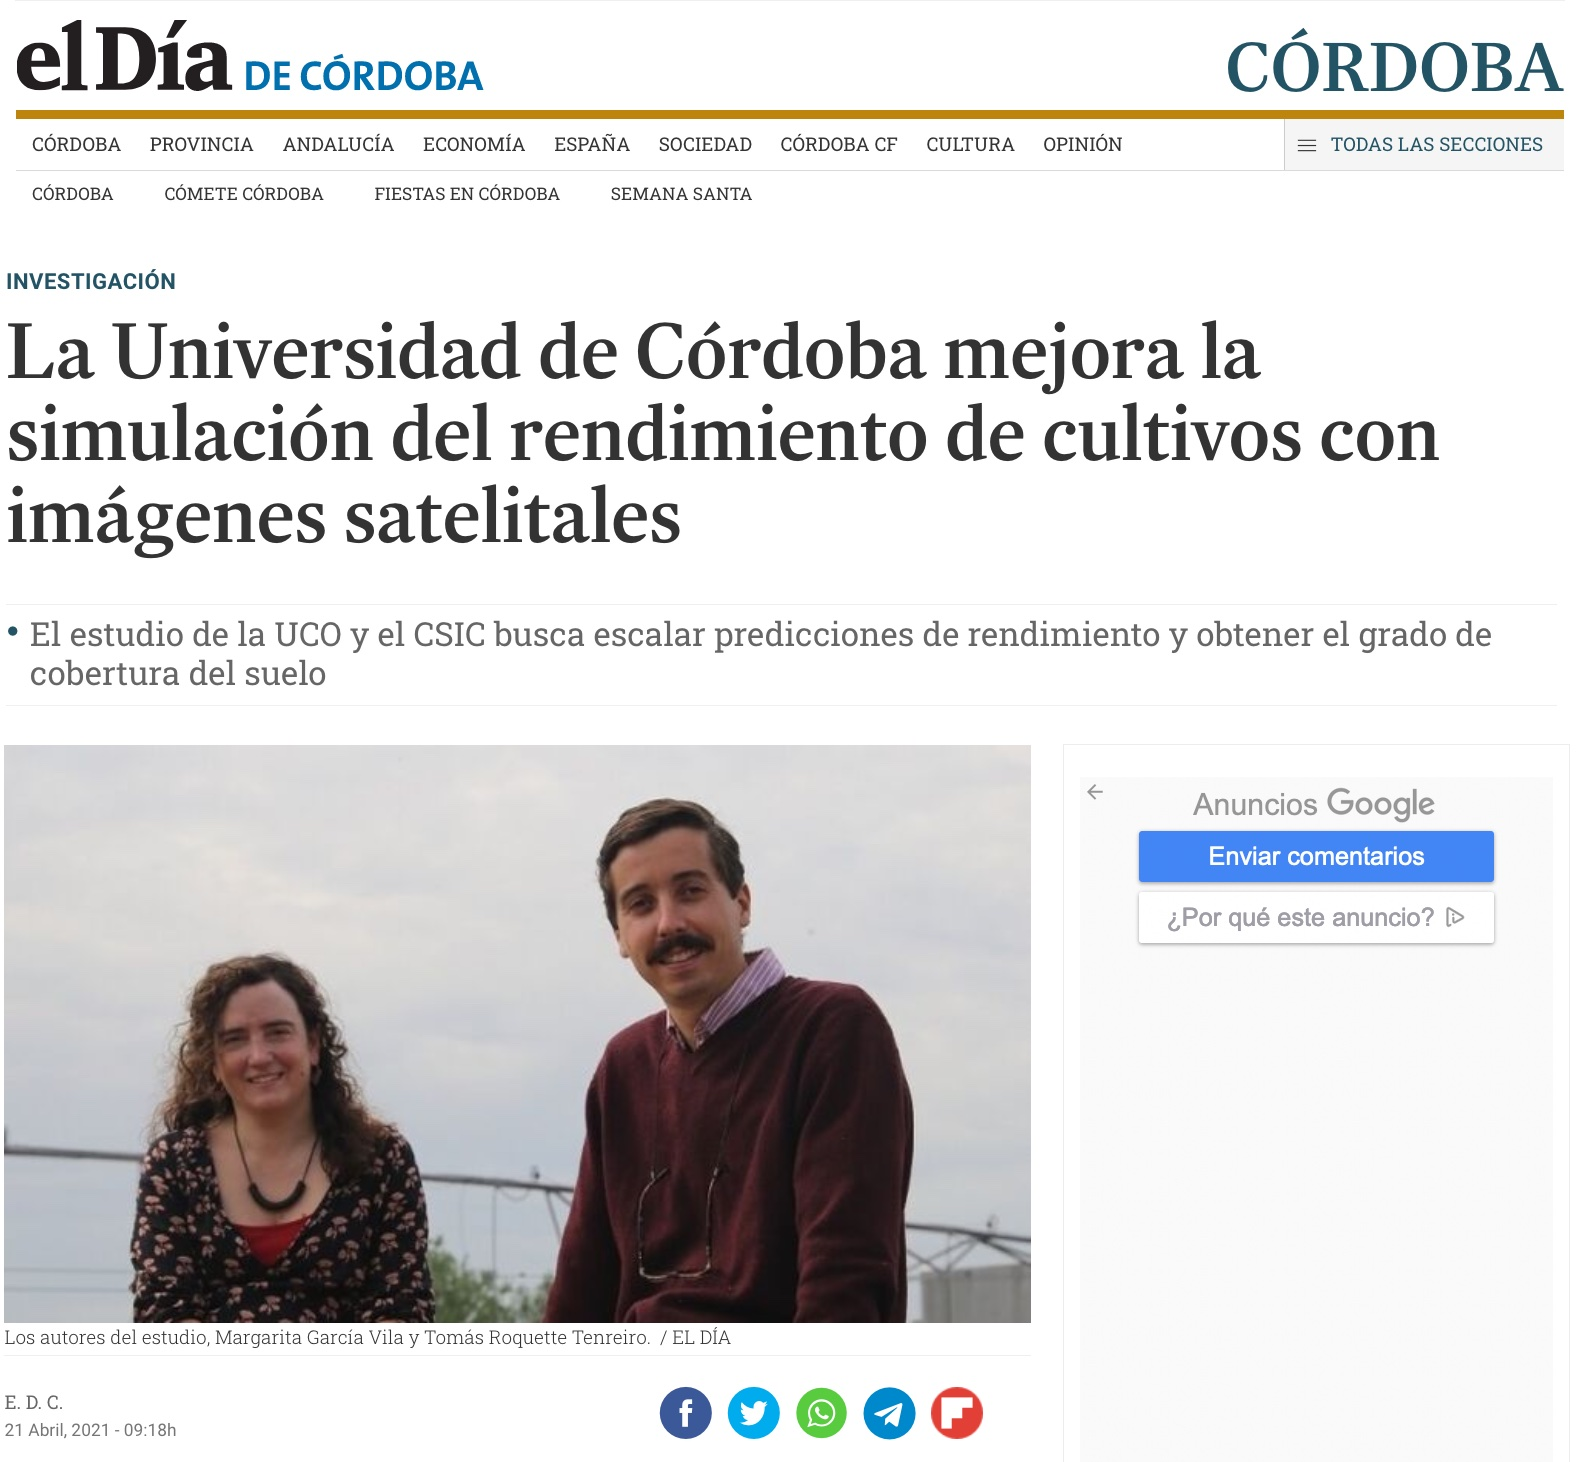 The University of Córdoba improves simulation of crop yield with satellite images